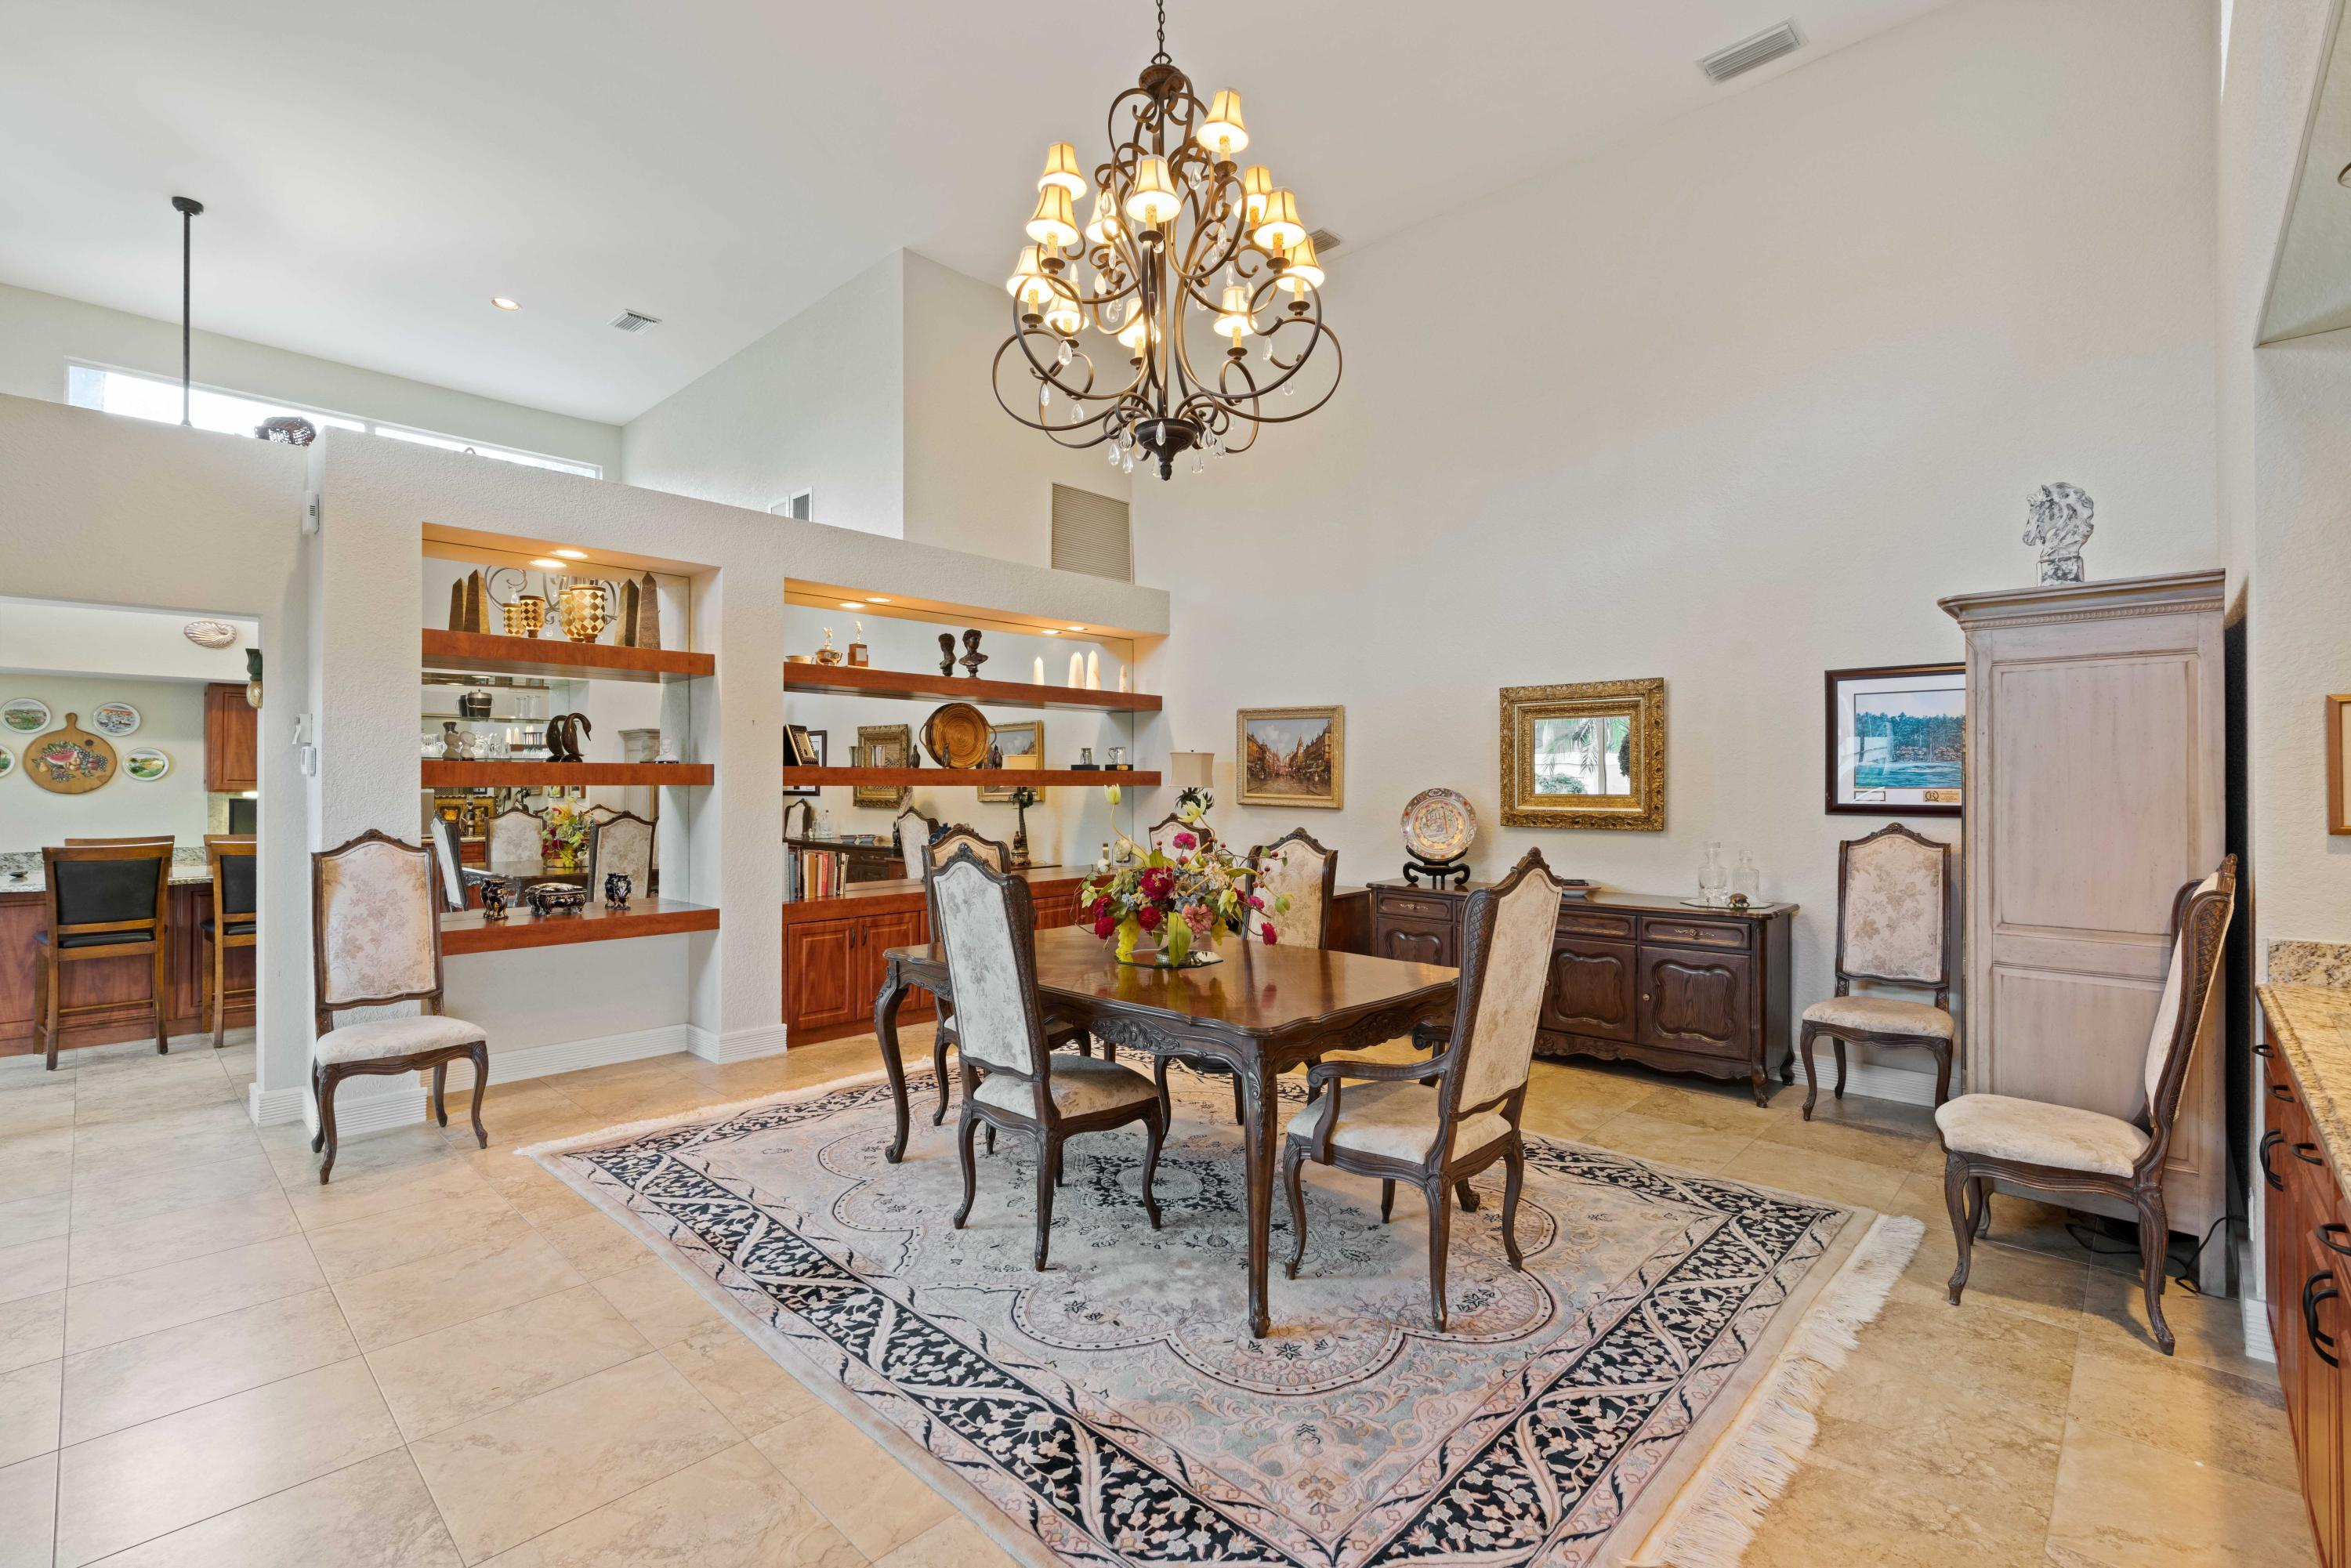 102 Waters Edge Drive, Jupiter, Florida 33477, 3 Bedrooms Bedrooms, ,4.1 BathroomsBathrooms,A,Villa,Waters Edge,RX-10481853